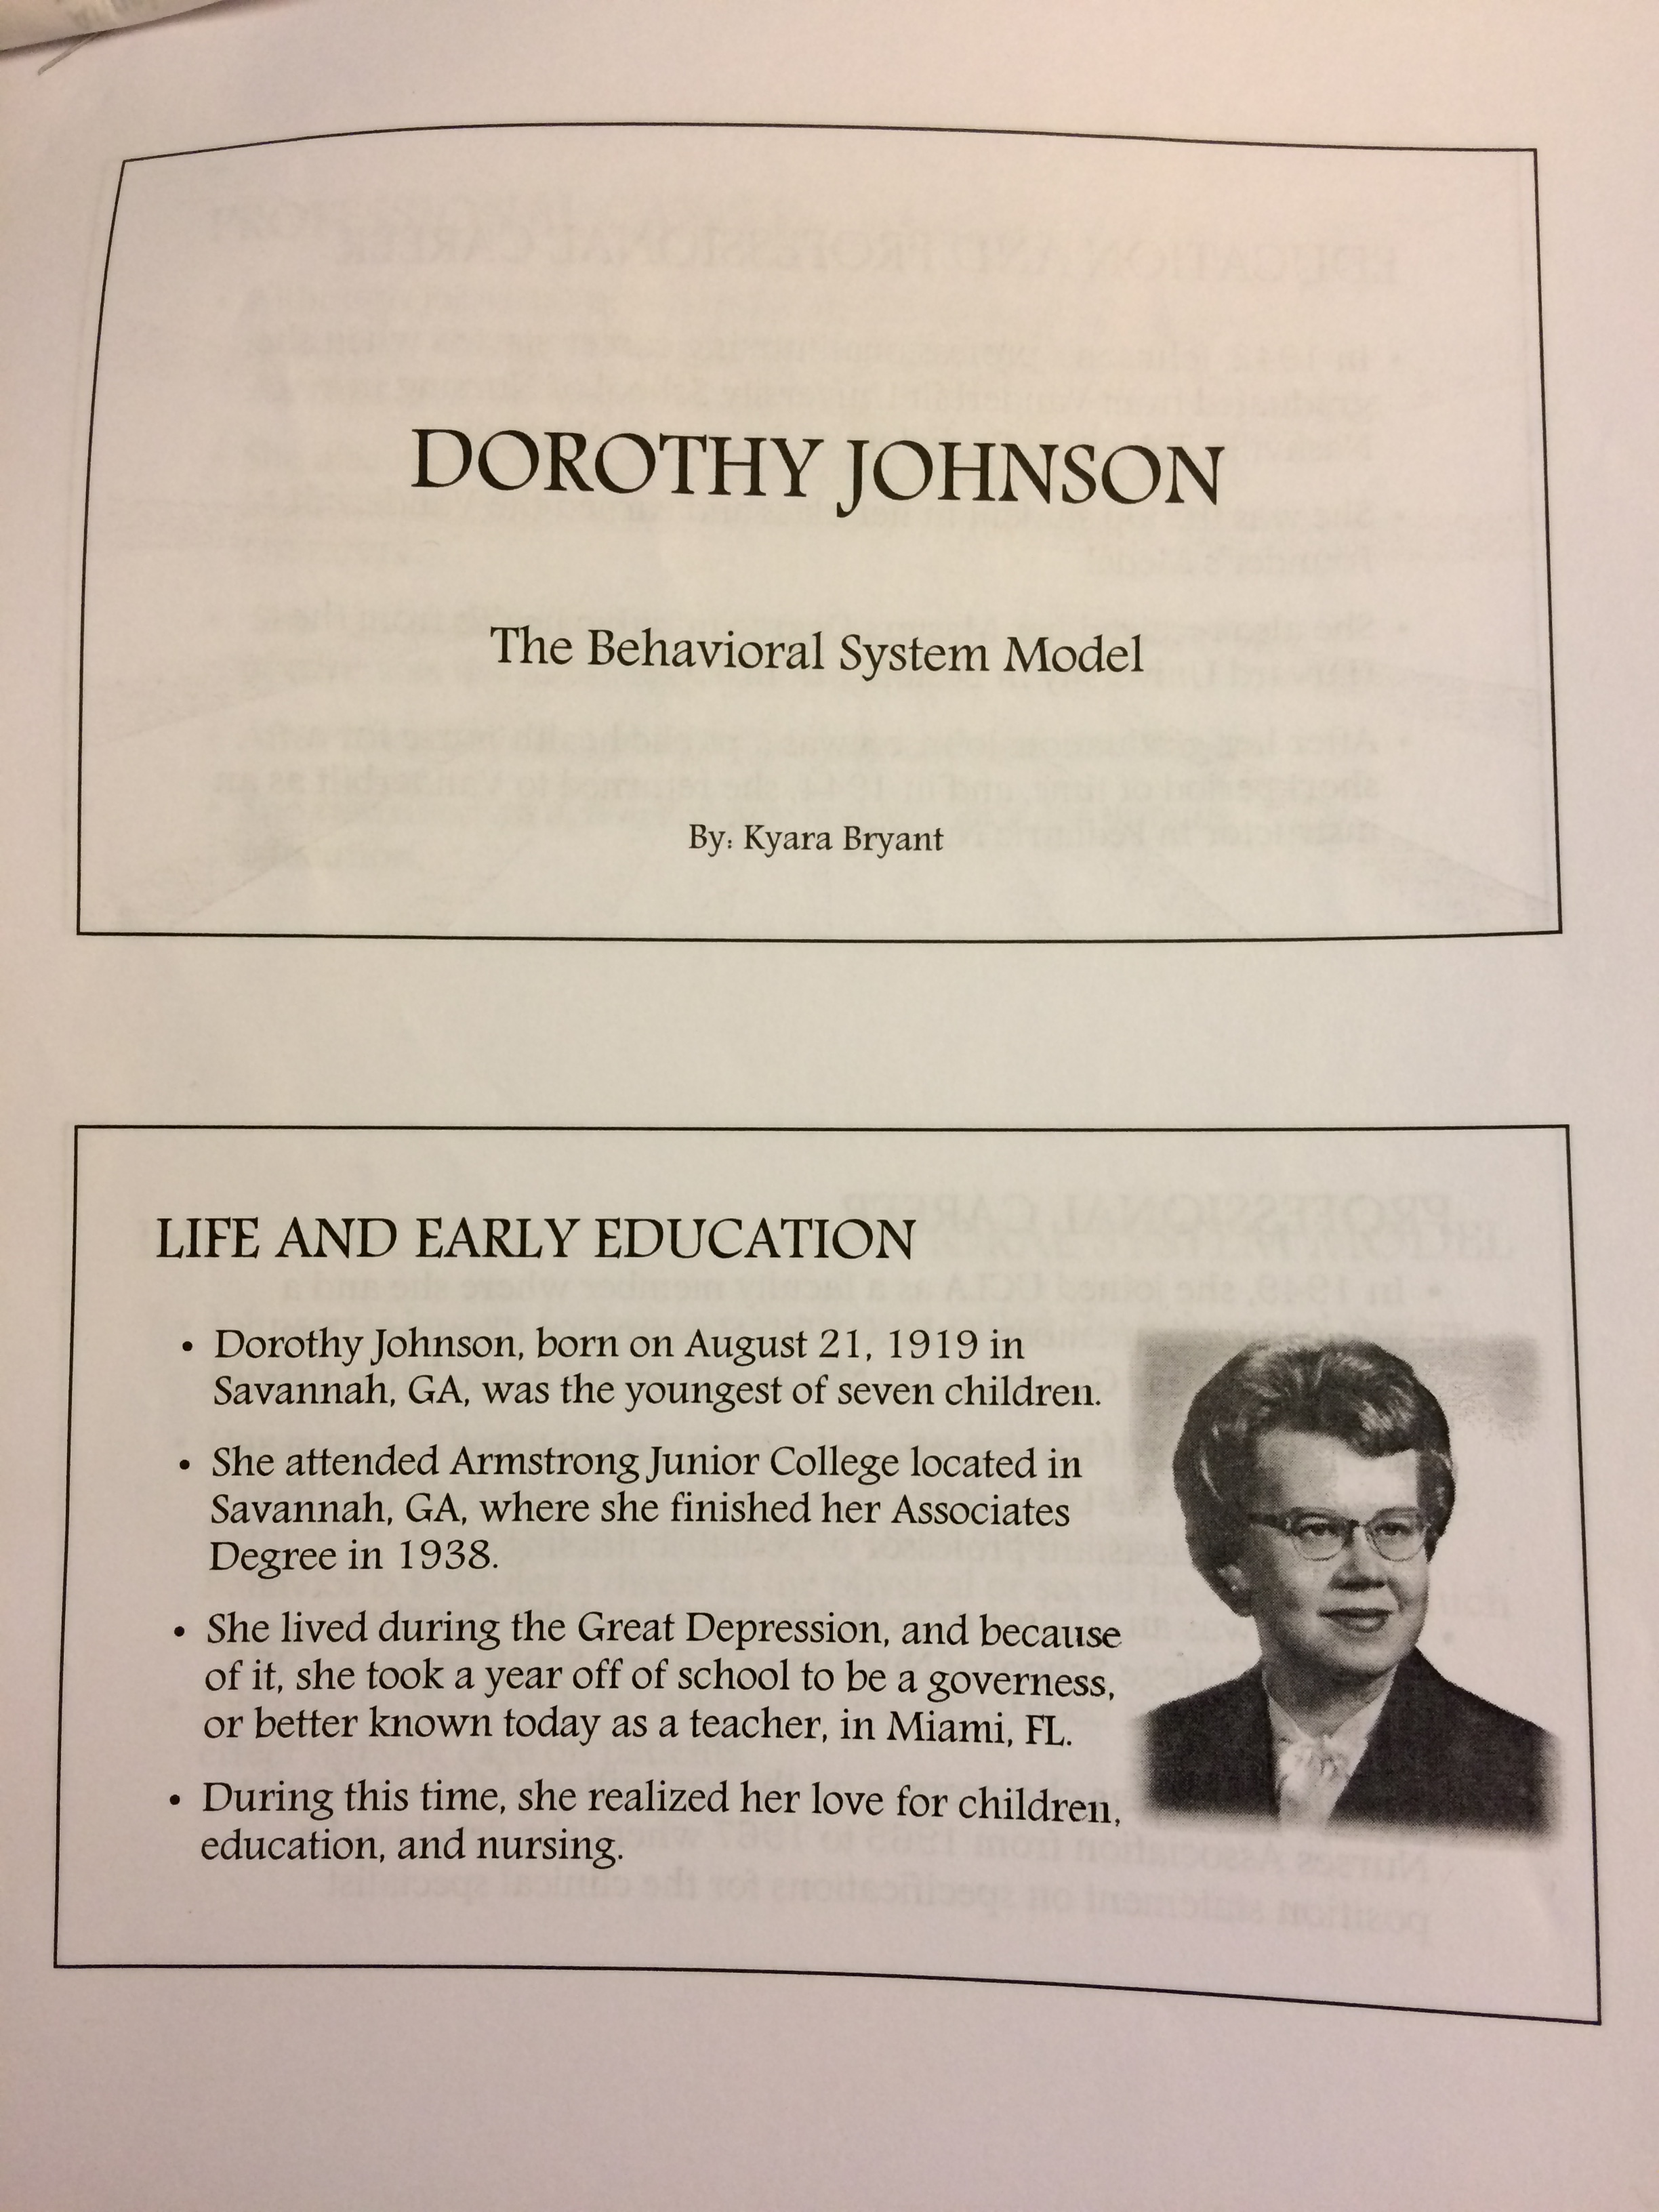 dorothy johnson behavioral system